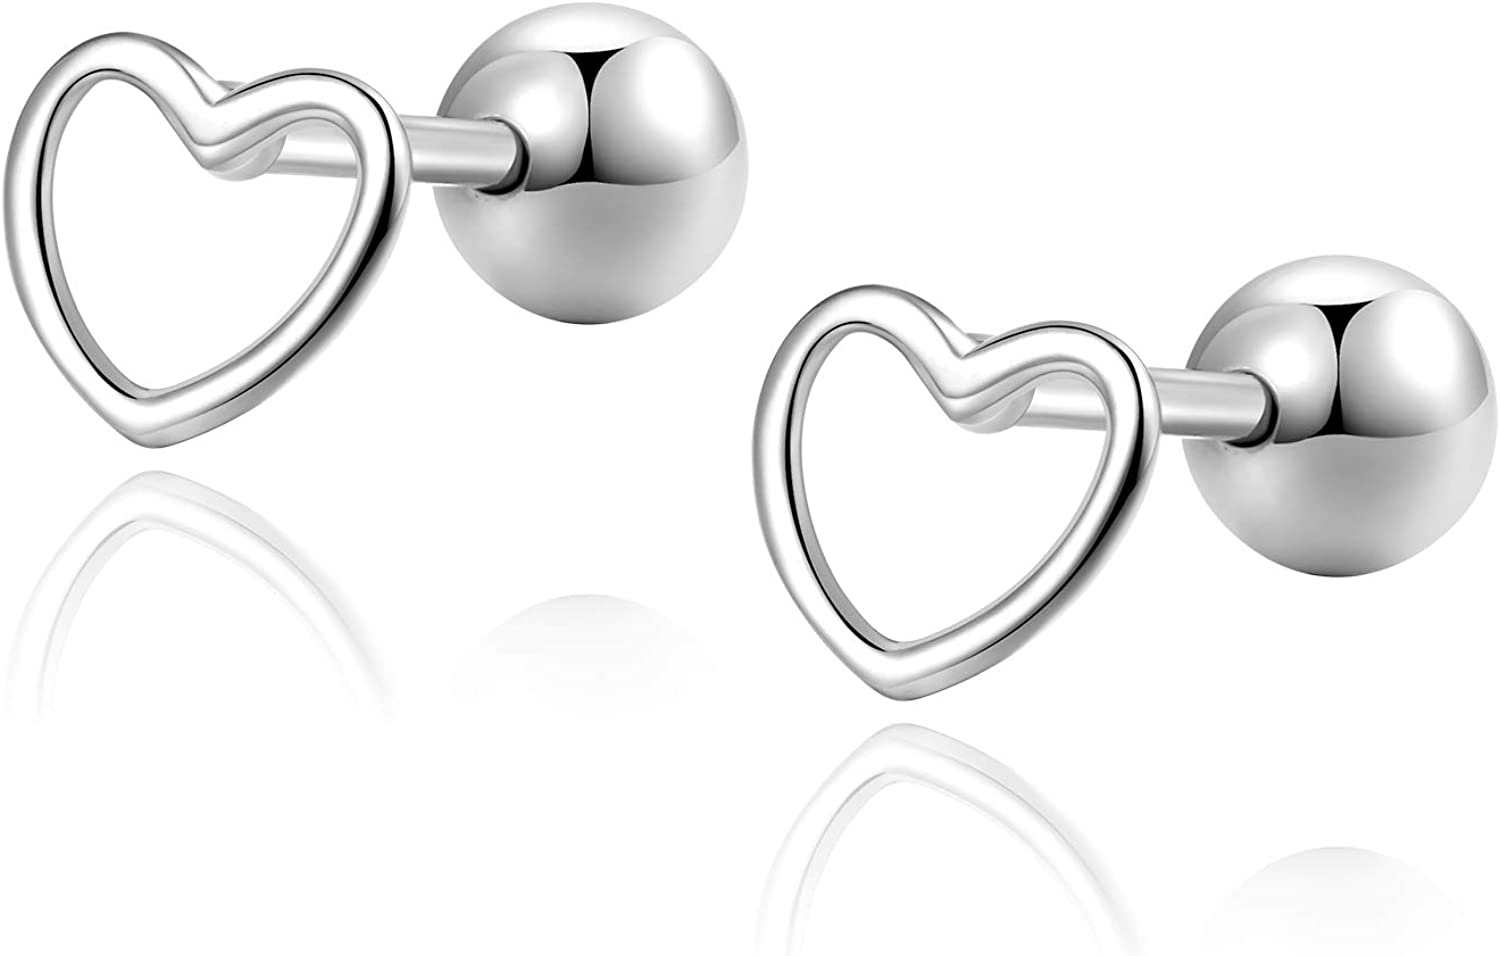 Love Heart Sterling Silver Cartilage Earring Studs Screwback Earrings Helix Barbell Piercing for Women